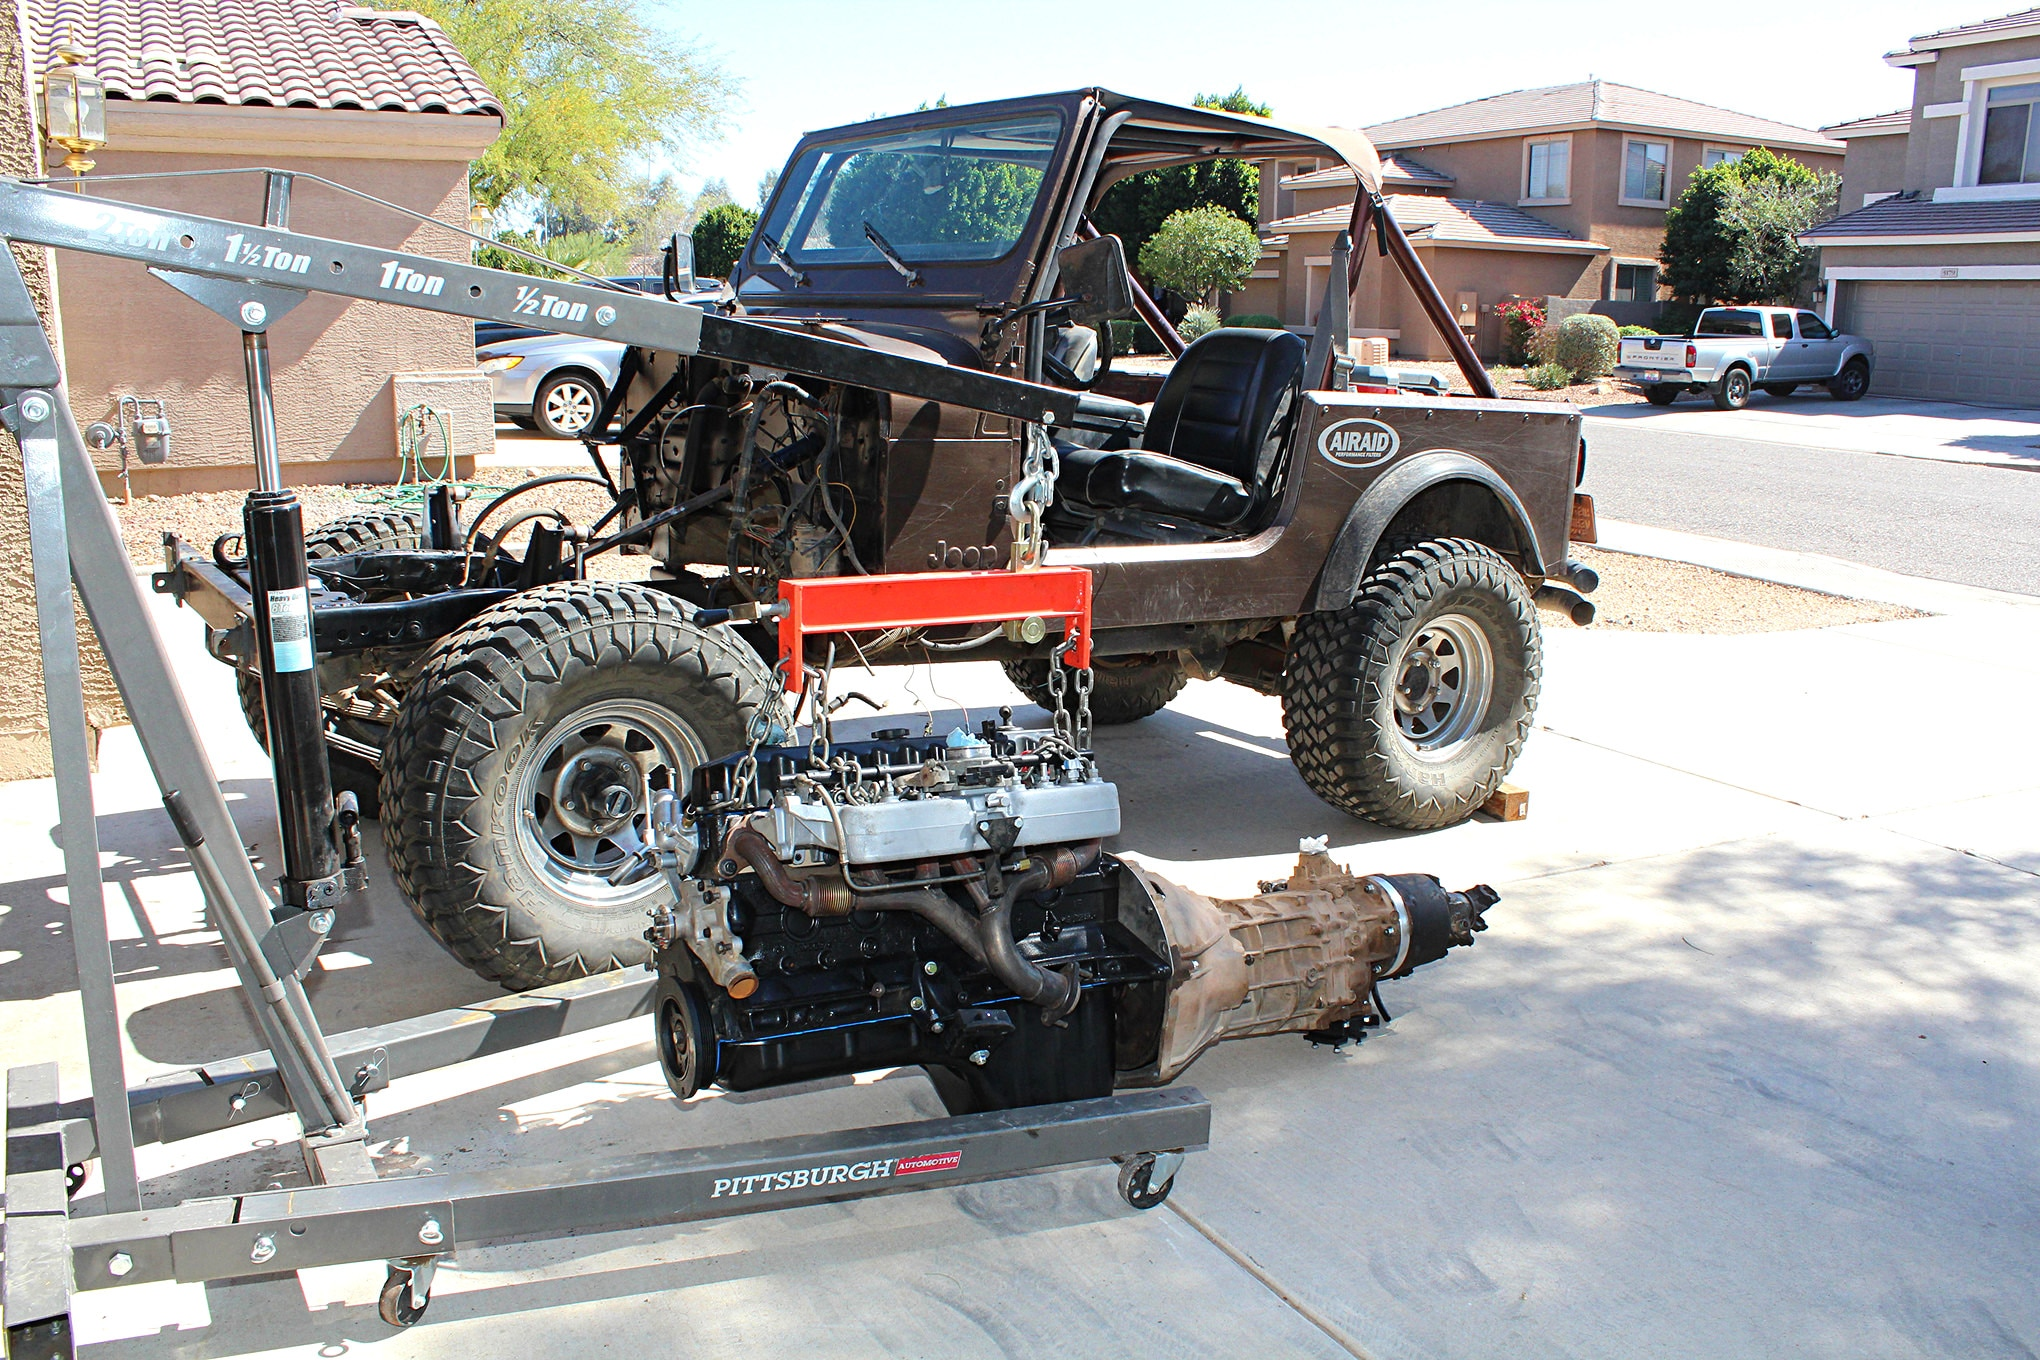 jeep 4 0 stroker engine for sale [ 2040 x 1360 Pixel ]